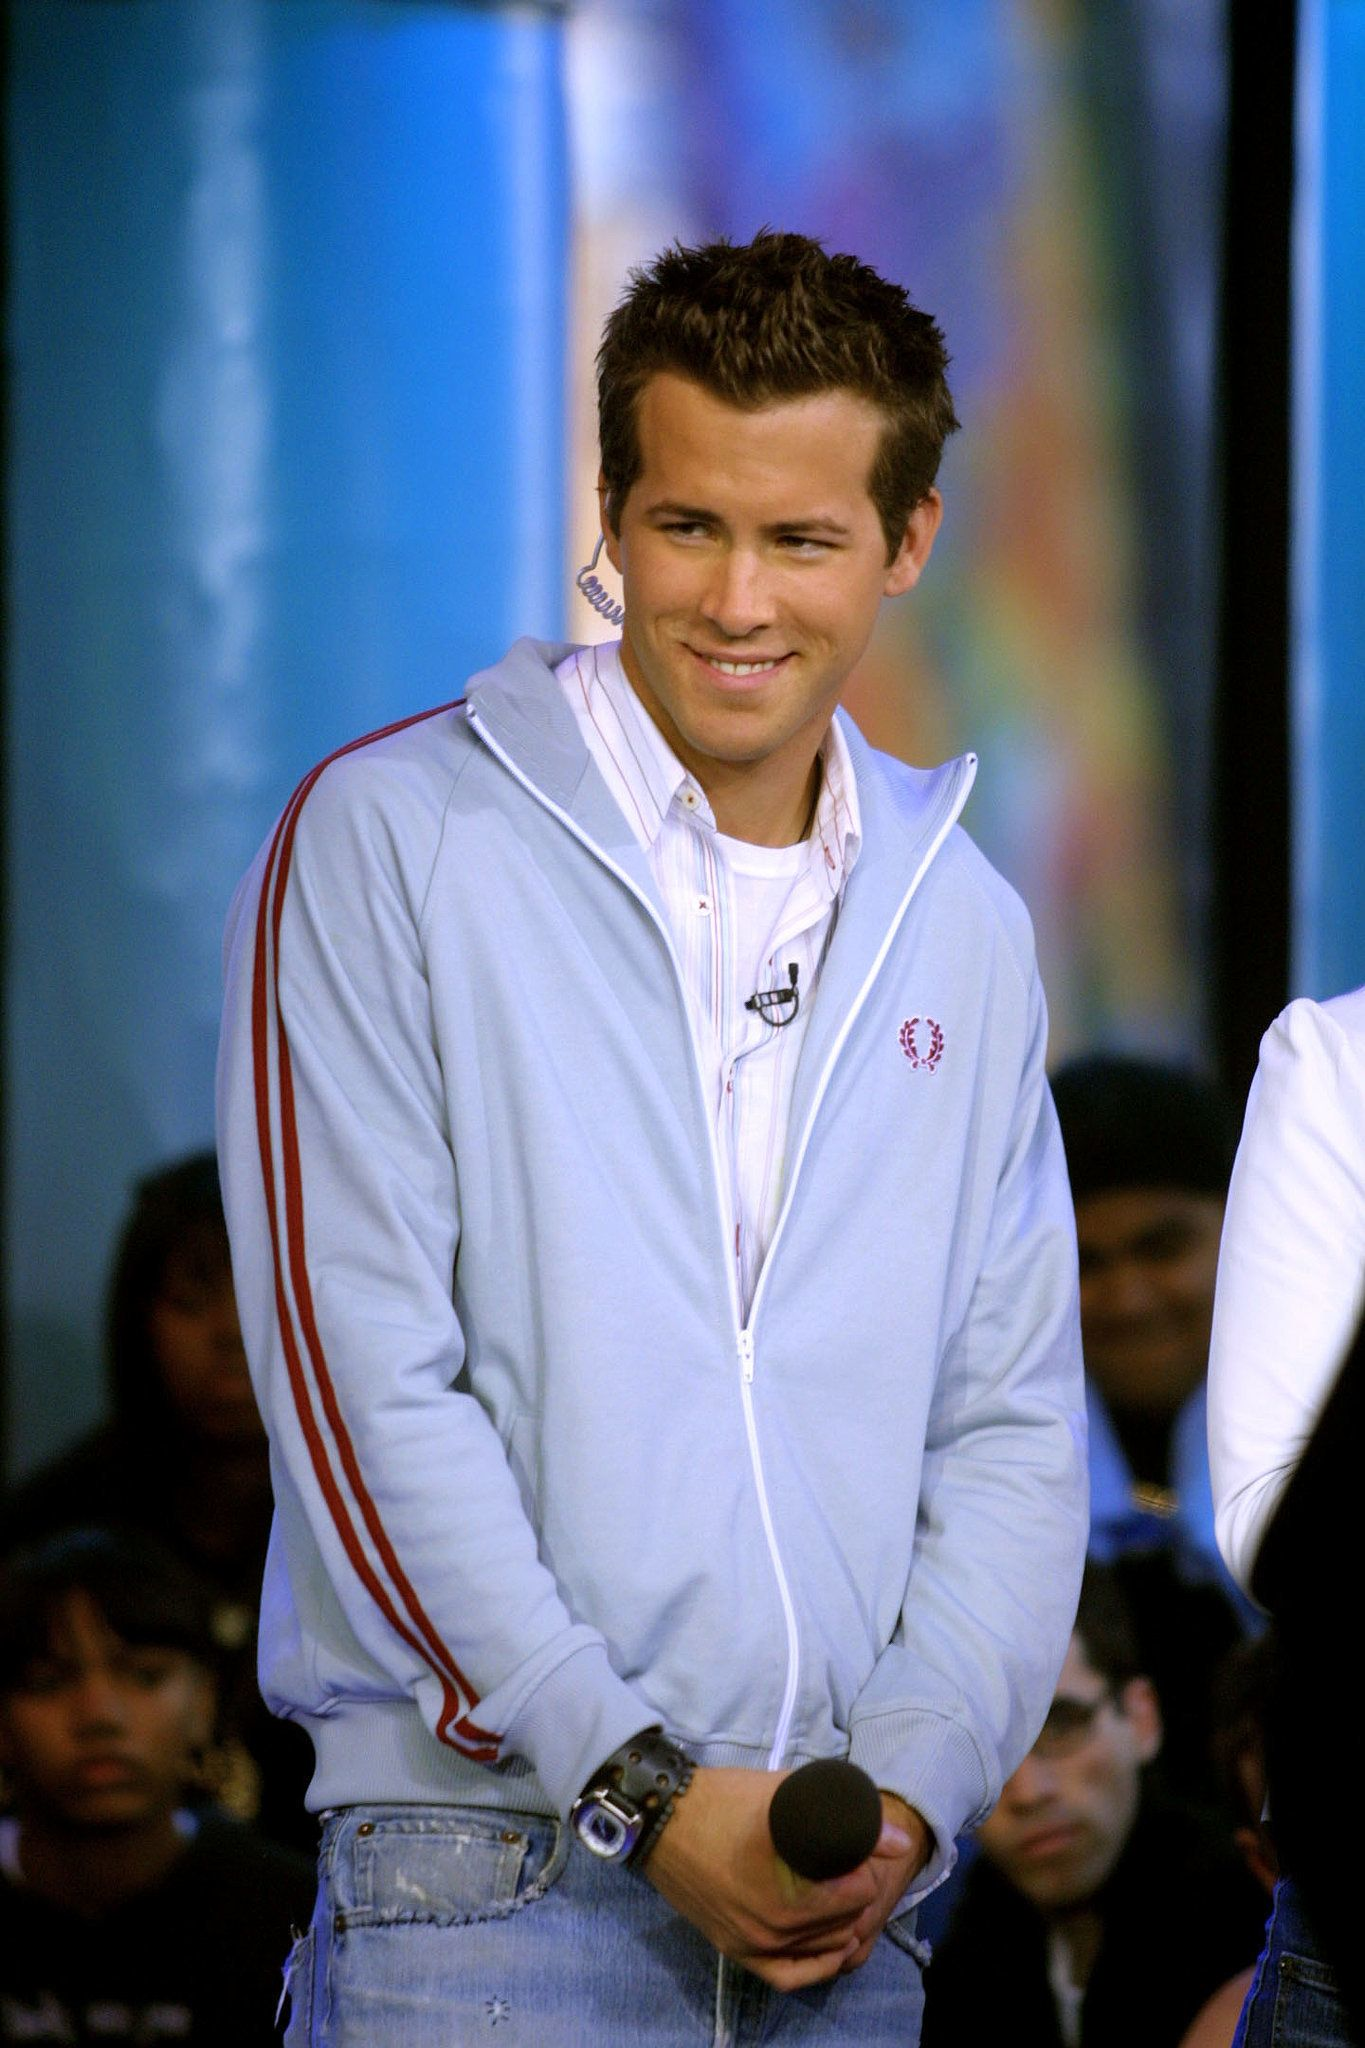 When He Visited Trl With Tara Reid Ryan Reynolds Ryan Reynolds